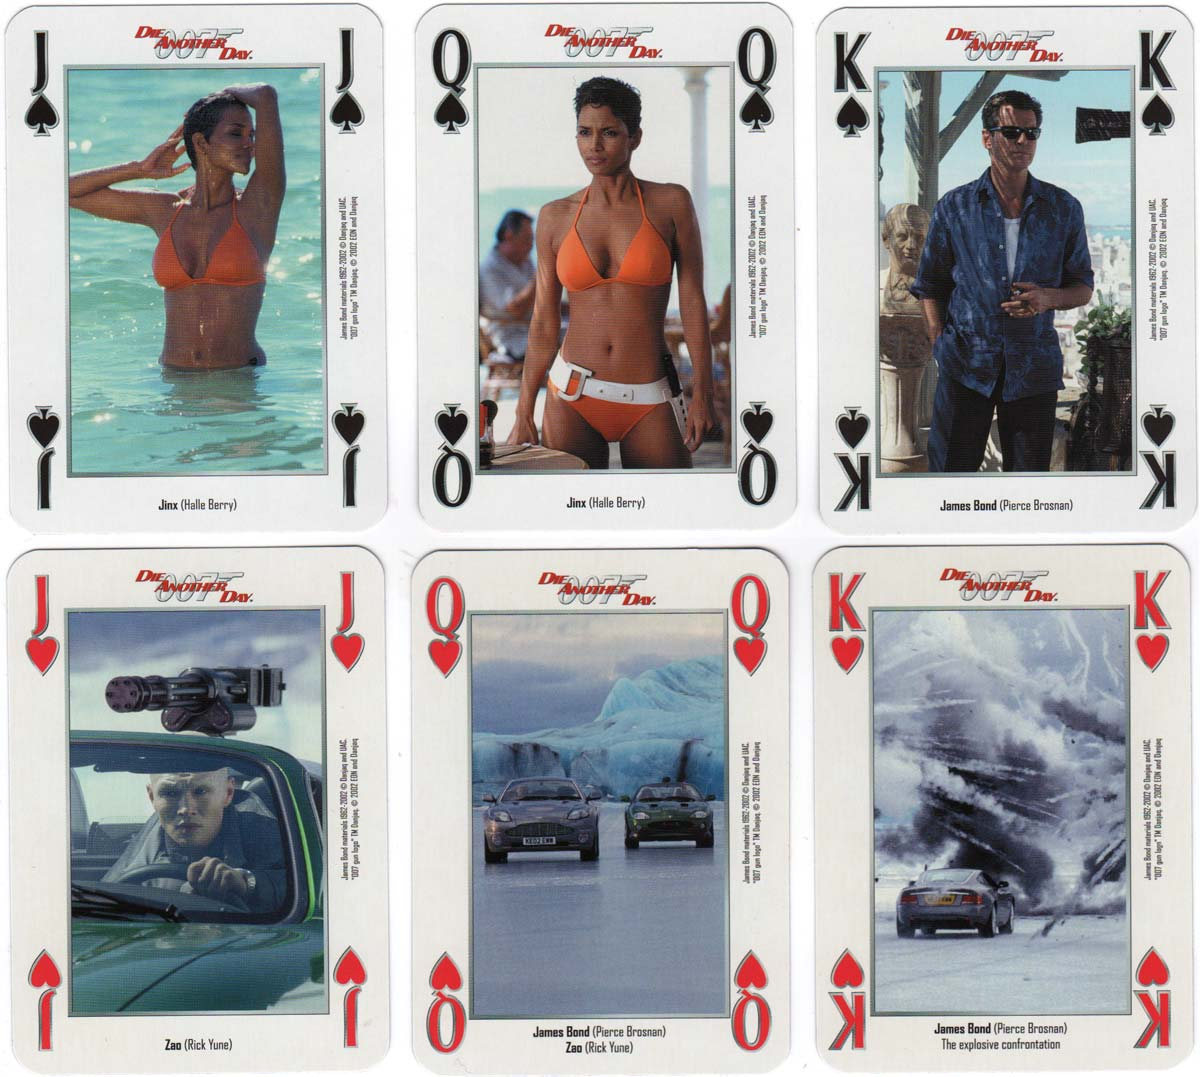 """""""007 Die Another Day"""" themed playing cards printed by Carta Mundi, 2002"""